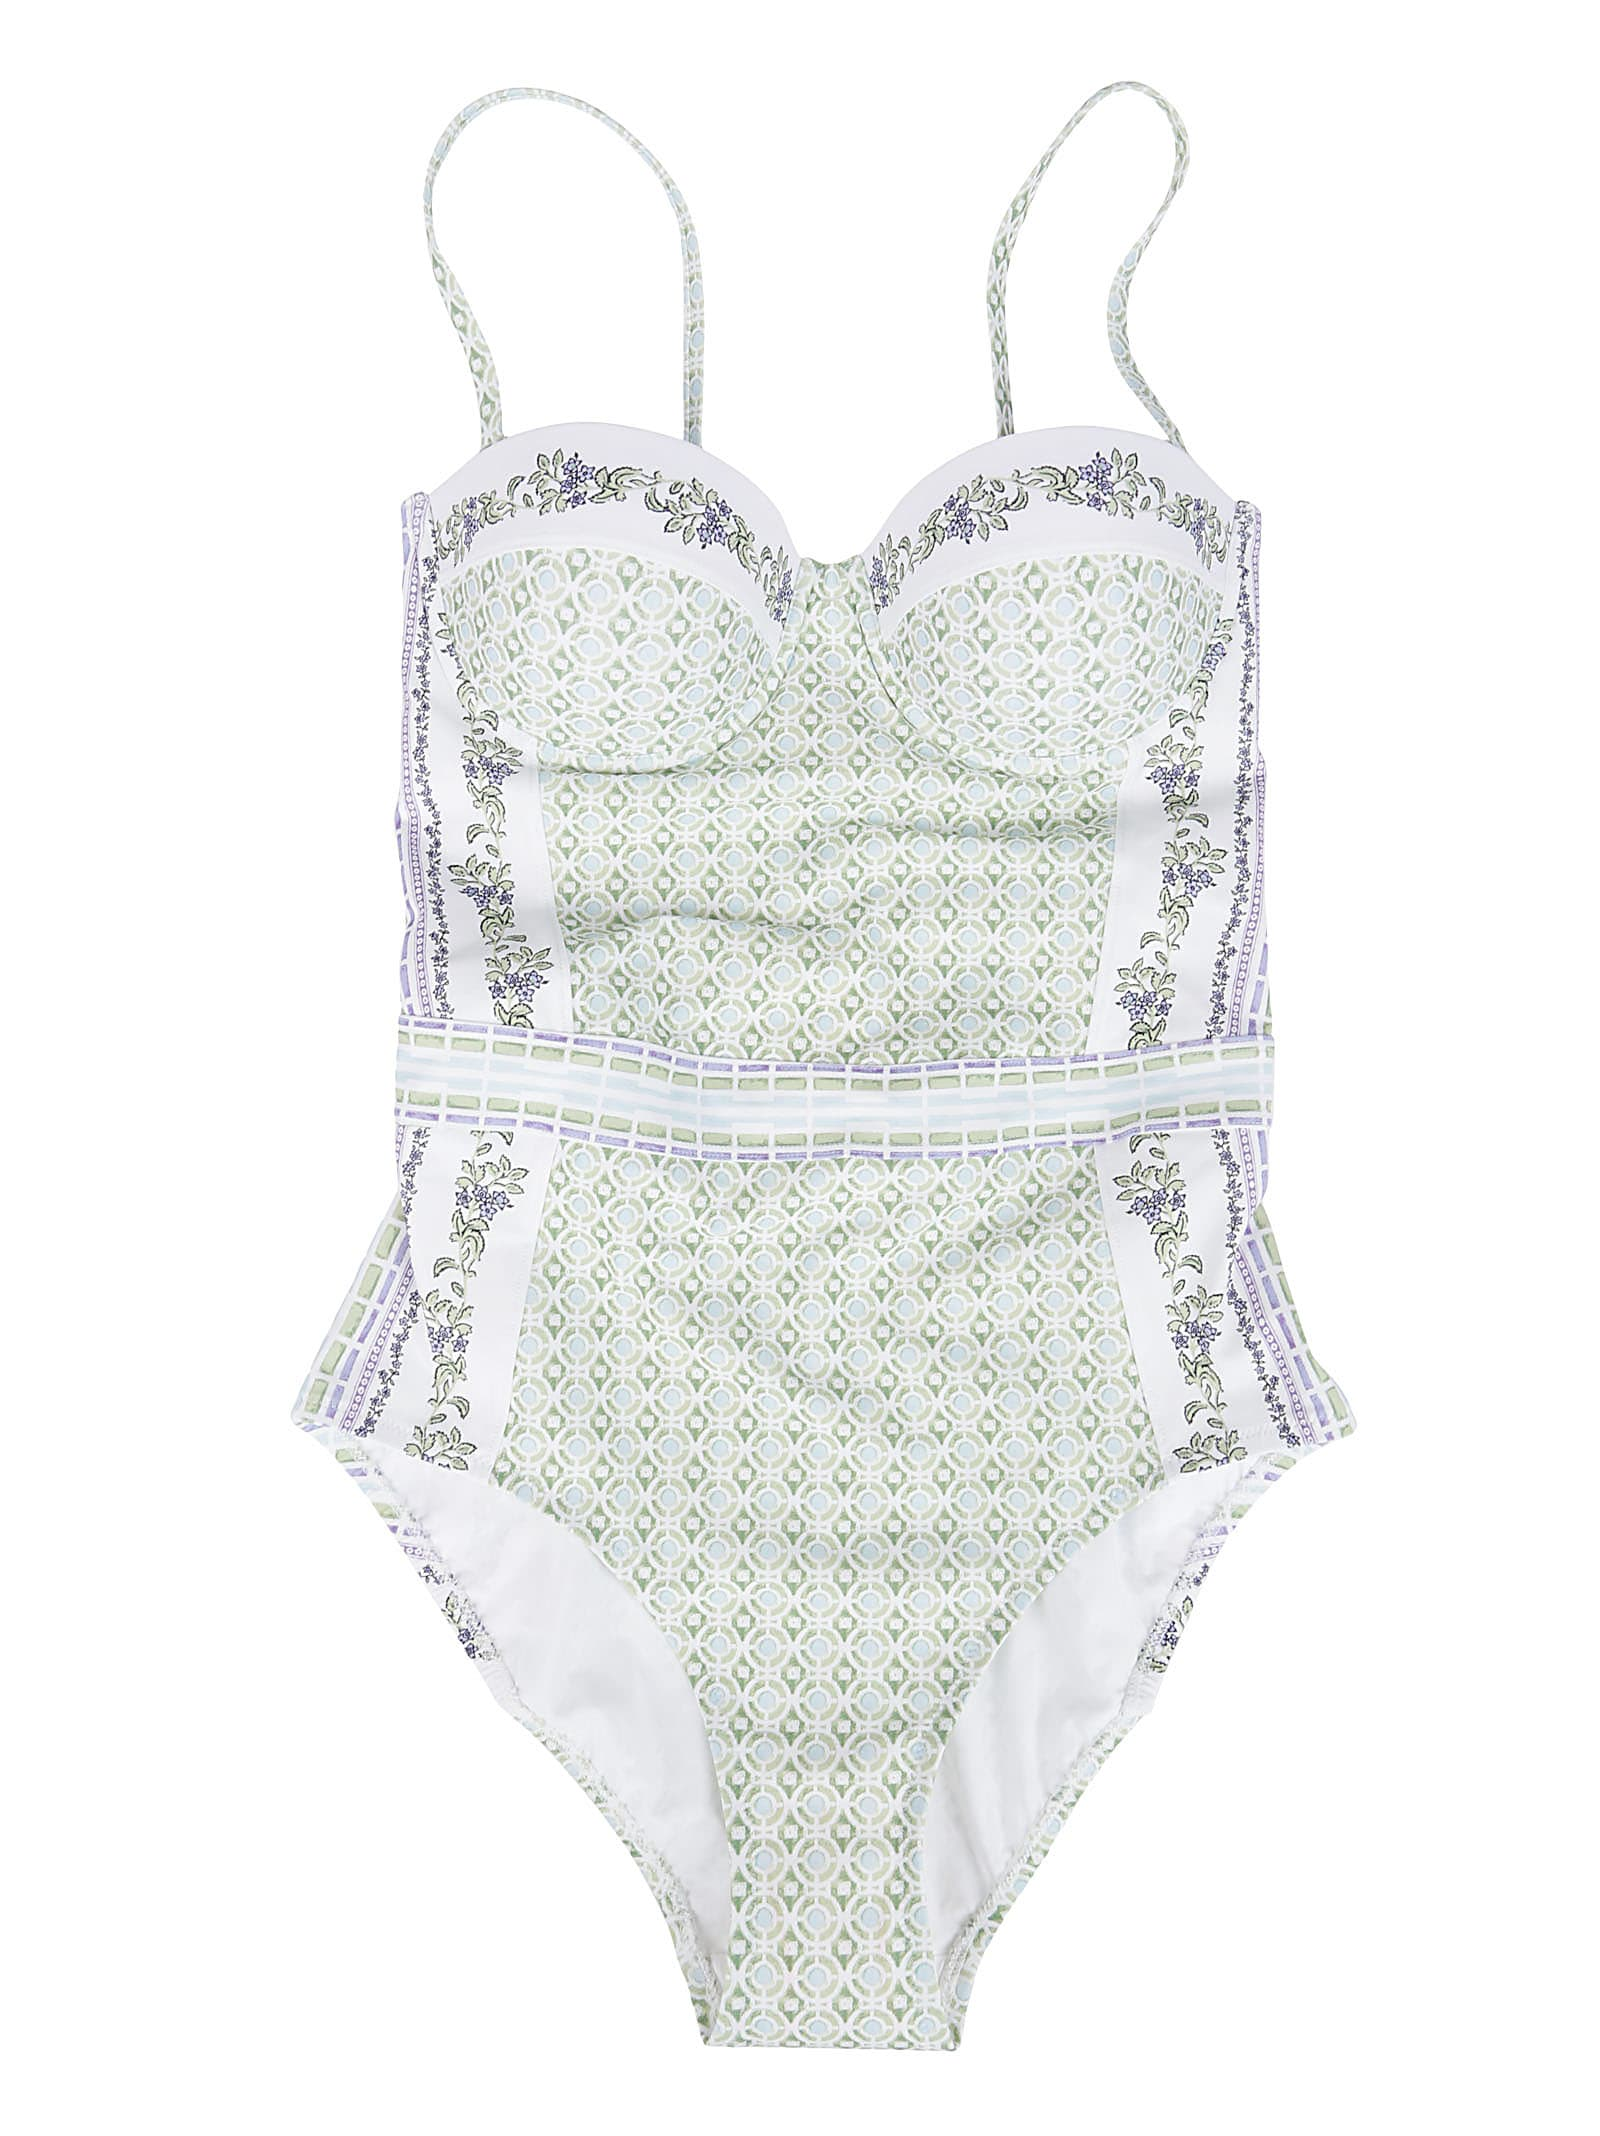 Tory Burch One-pieces GREEN AND LIGHT BLUE BODYSUIT